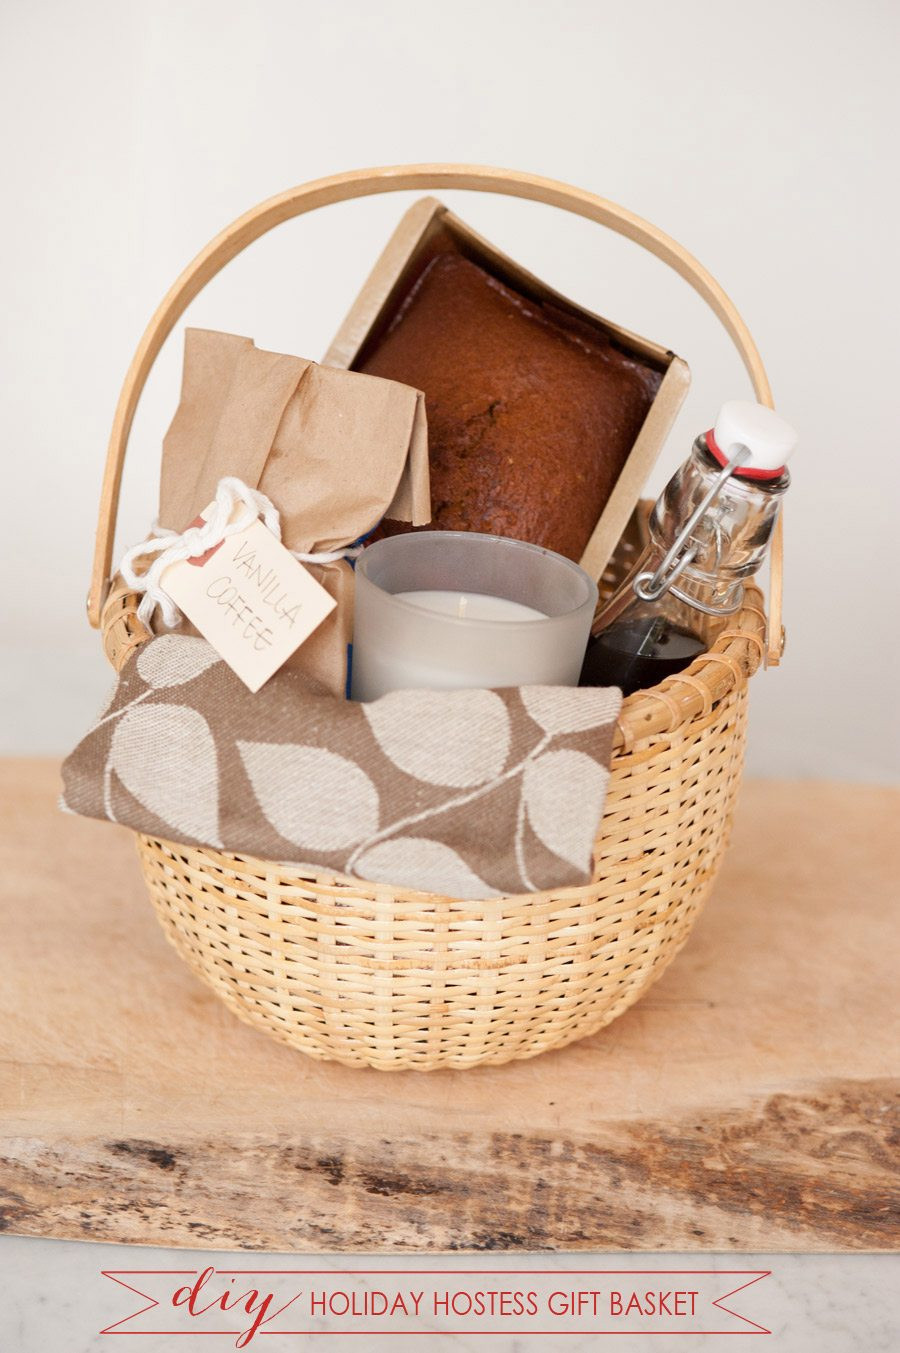 Best ideas about Basket Gift Ideas . Save or Pin DIY Holiday Hostess Gift Basket The Sweetest Occasion Now.